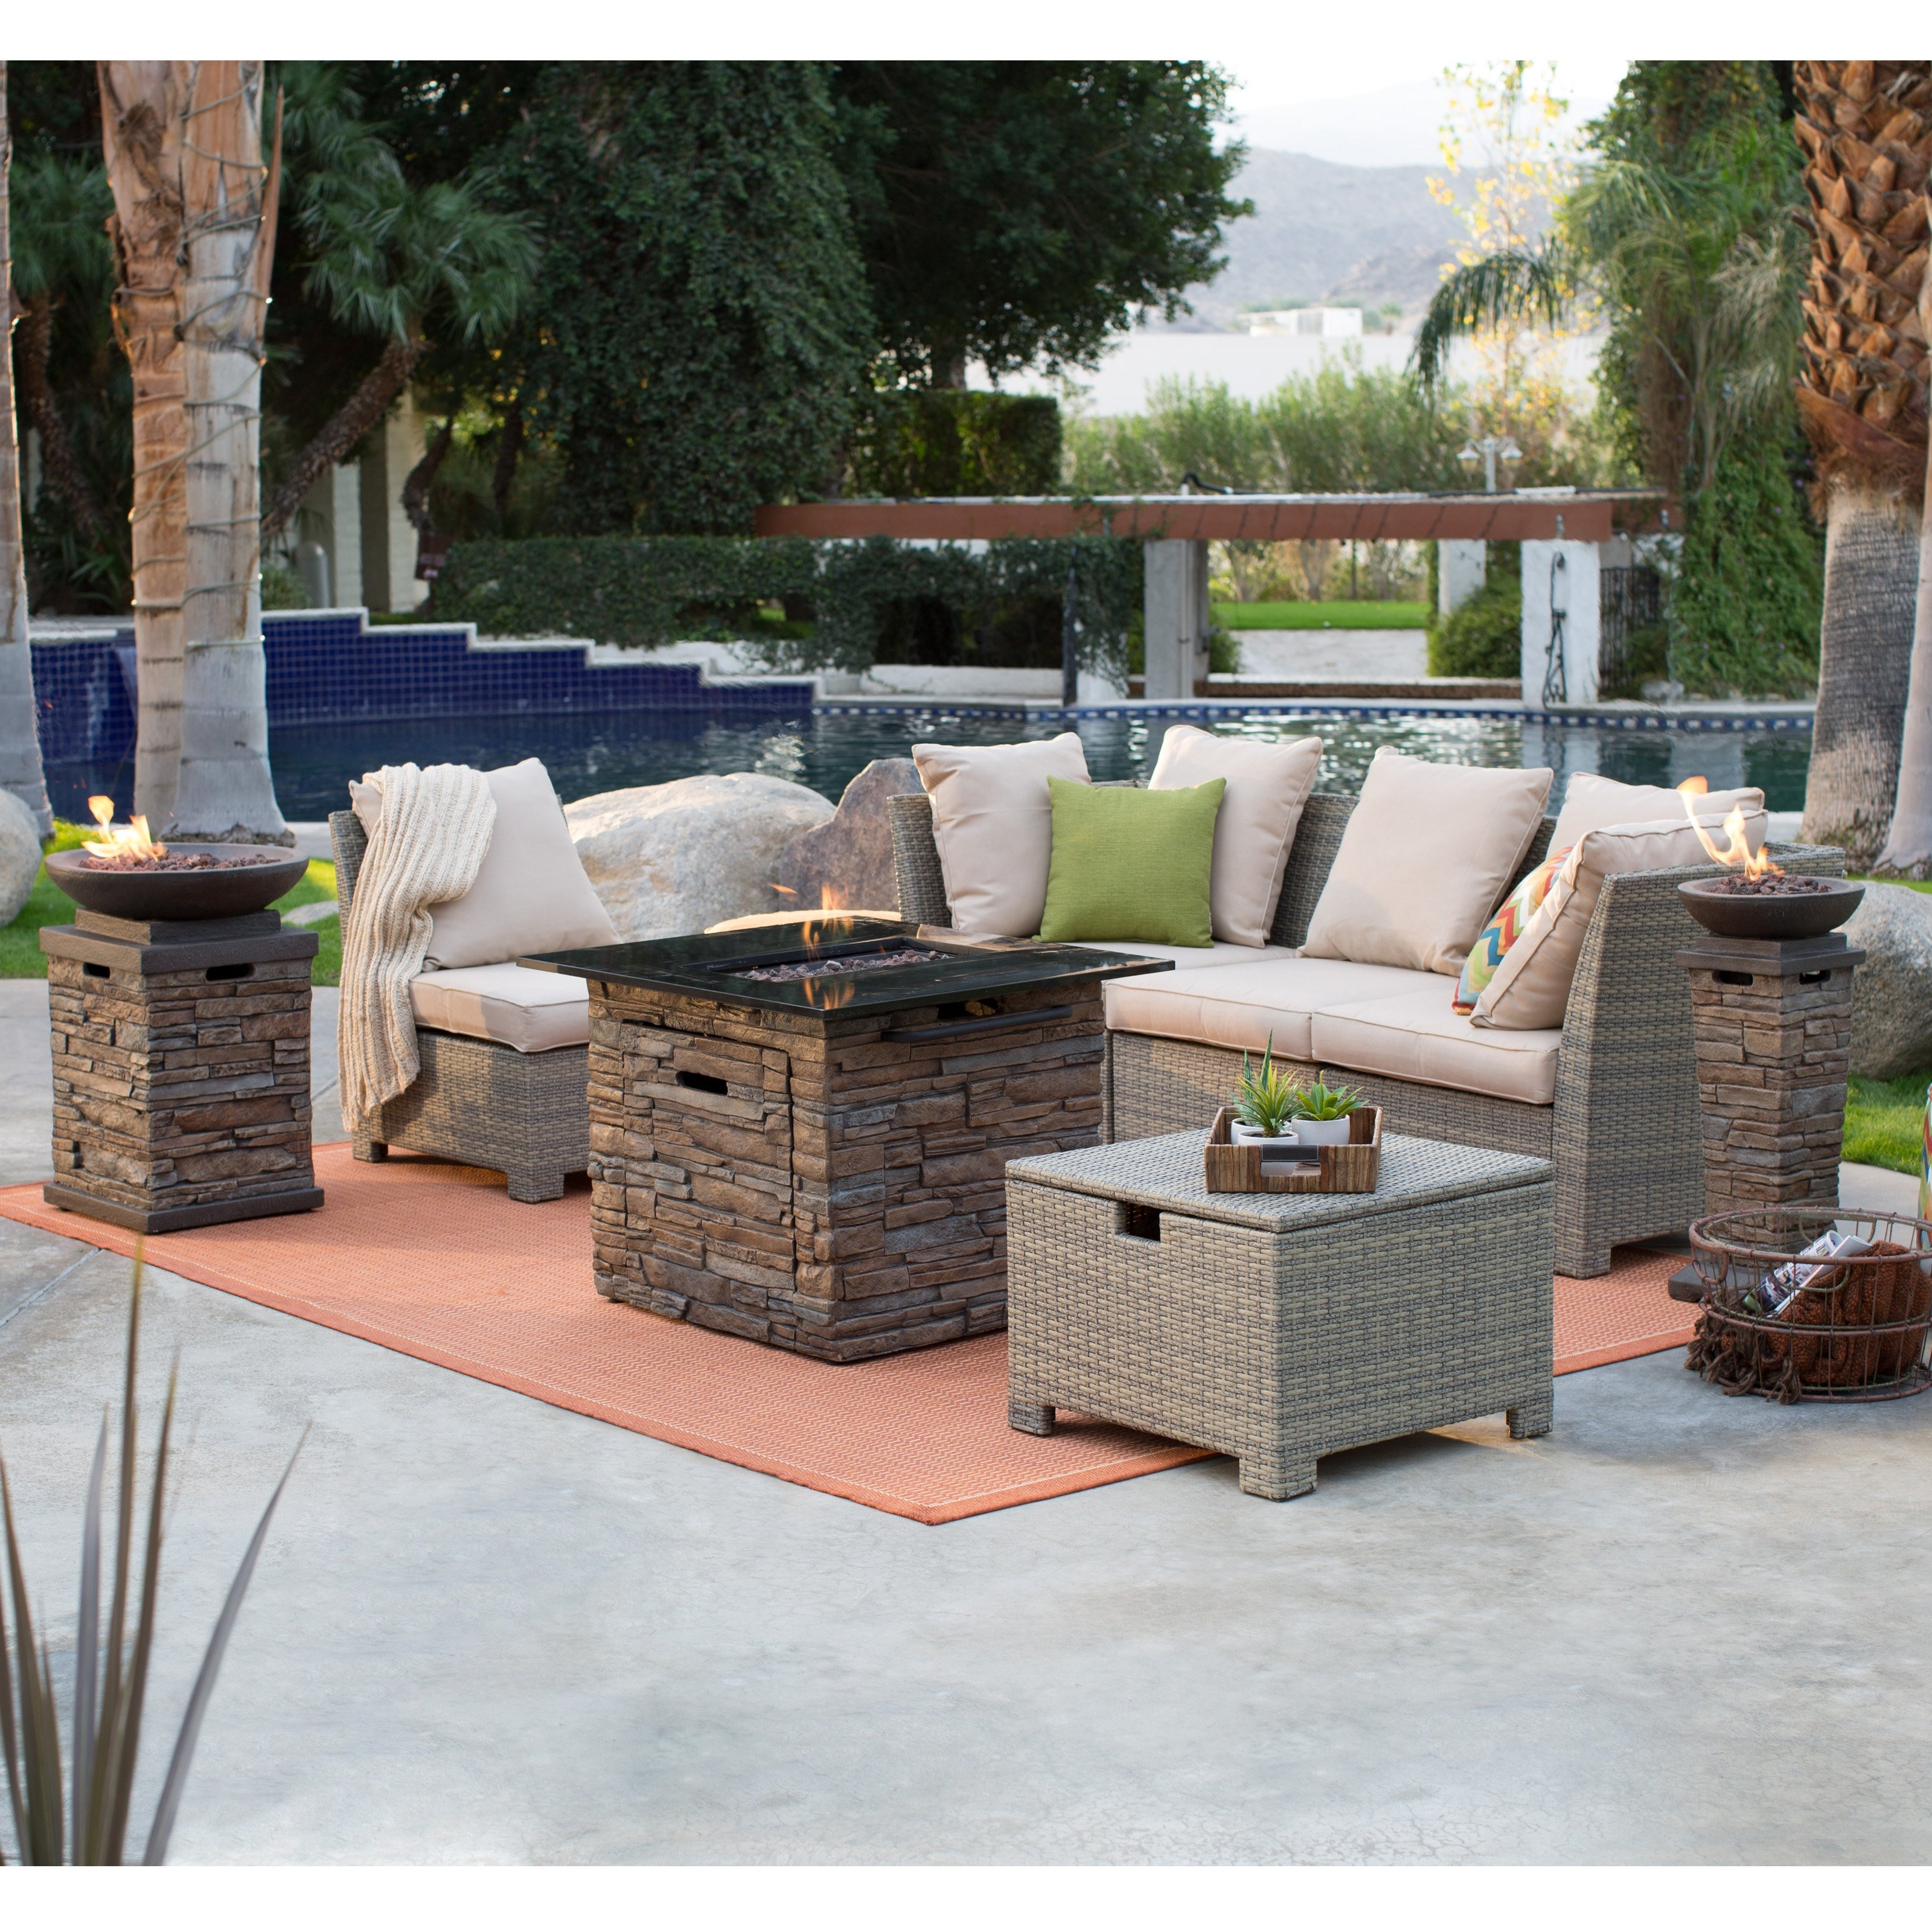 Most Recently Released Unlimited Gas Fire Pit Conversation Set Fortune Outdoor Patio With With Regard To Patio Conversation Sets With Propane Fire Pit (View 3 of 15)